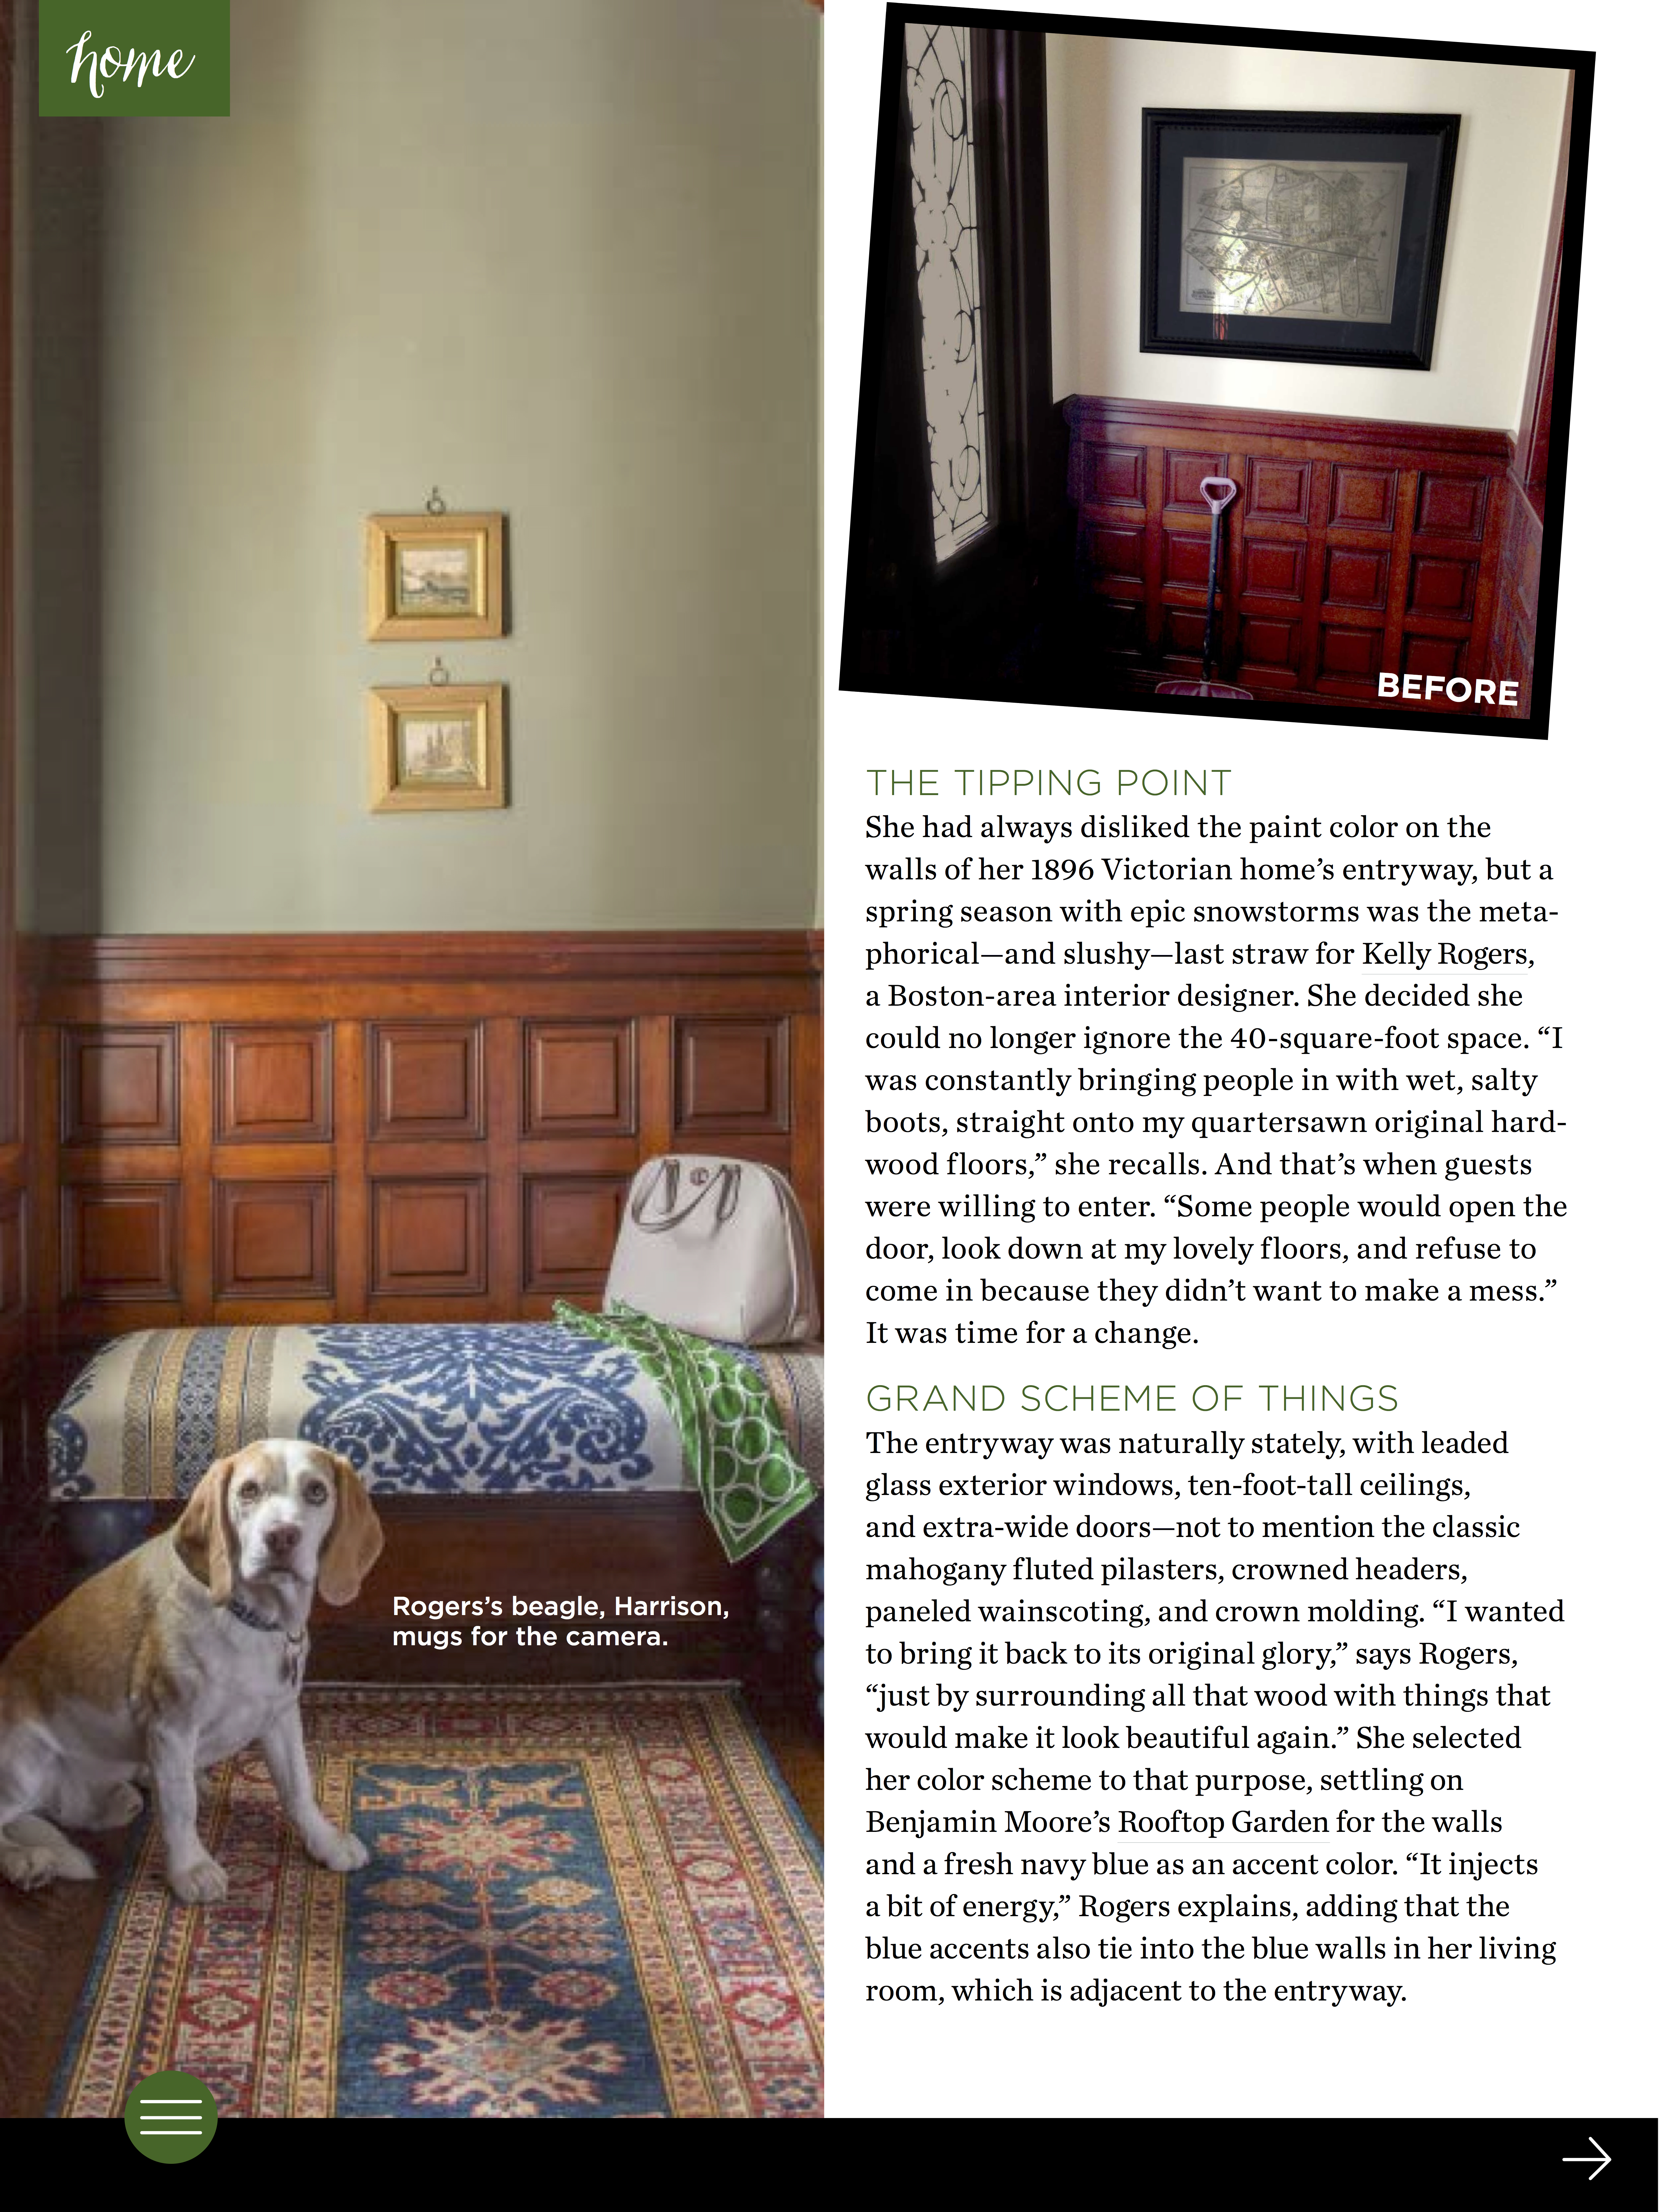 Kelly Rogers Interiors | Interiors for Families | 11/2015 Three Magazine Feature